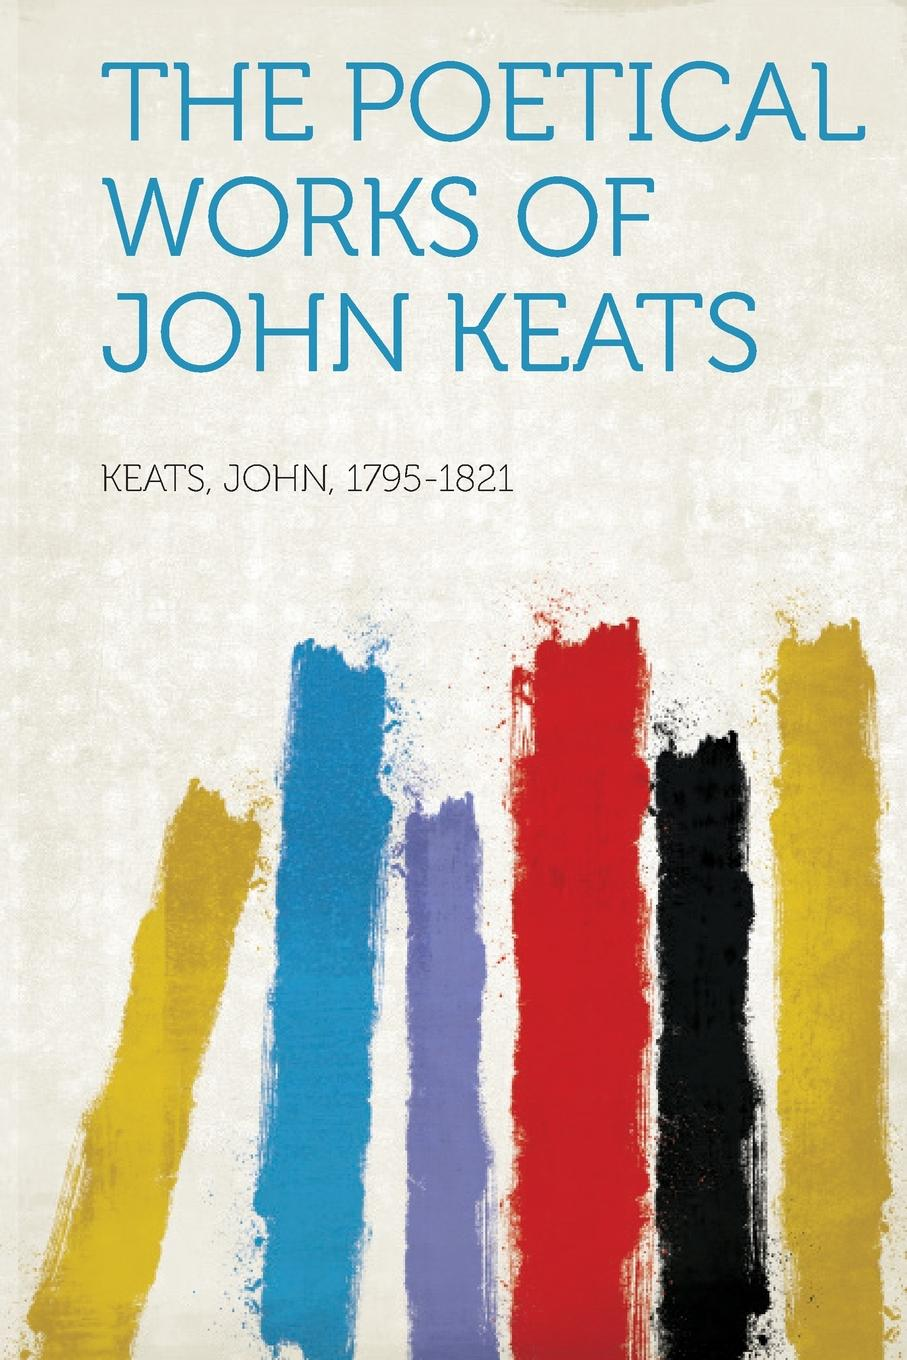 John Keats The Poetical Works of John Keats other keats